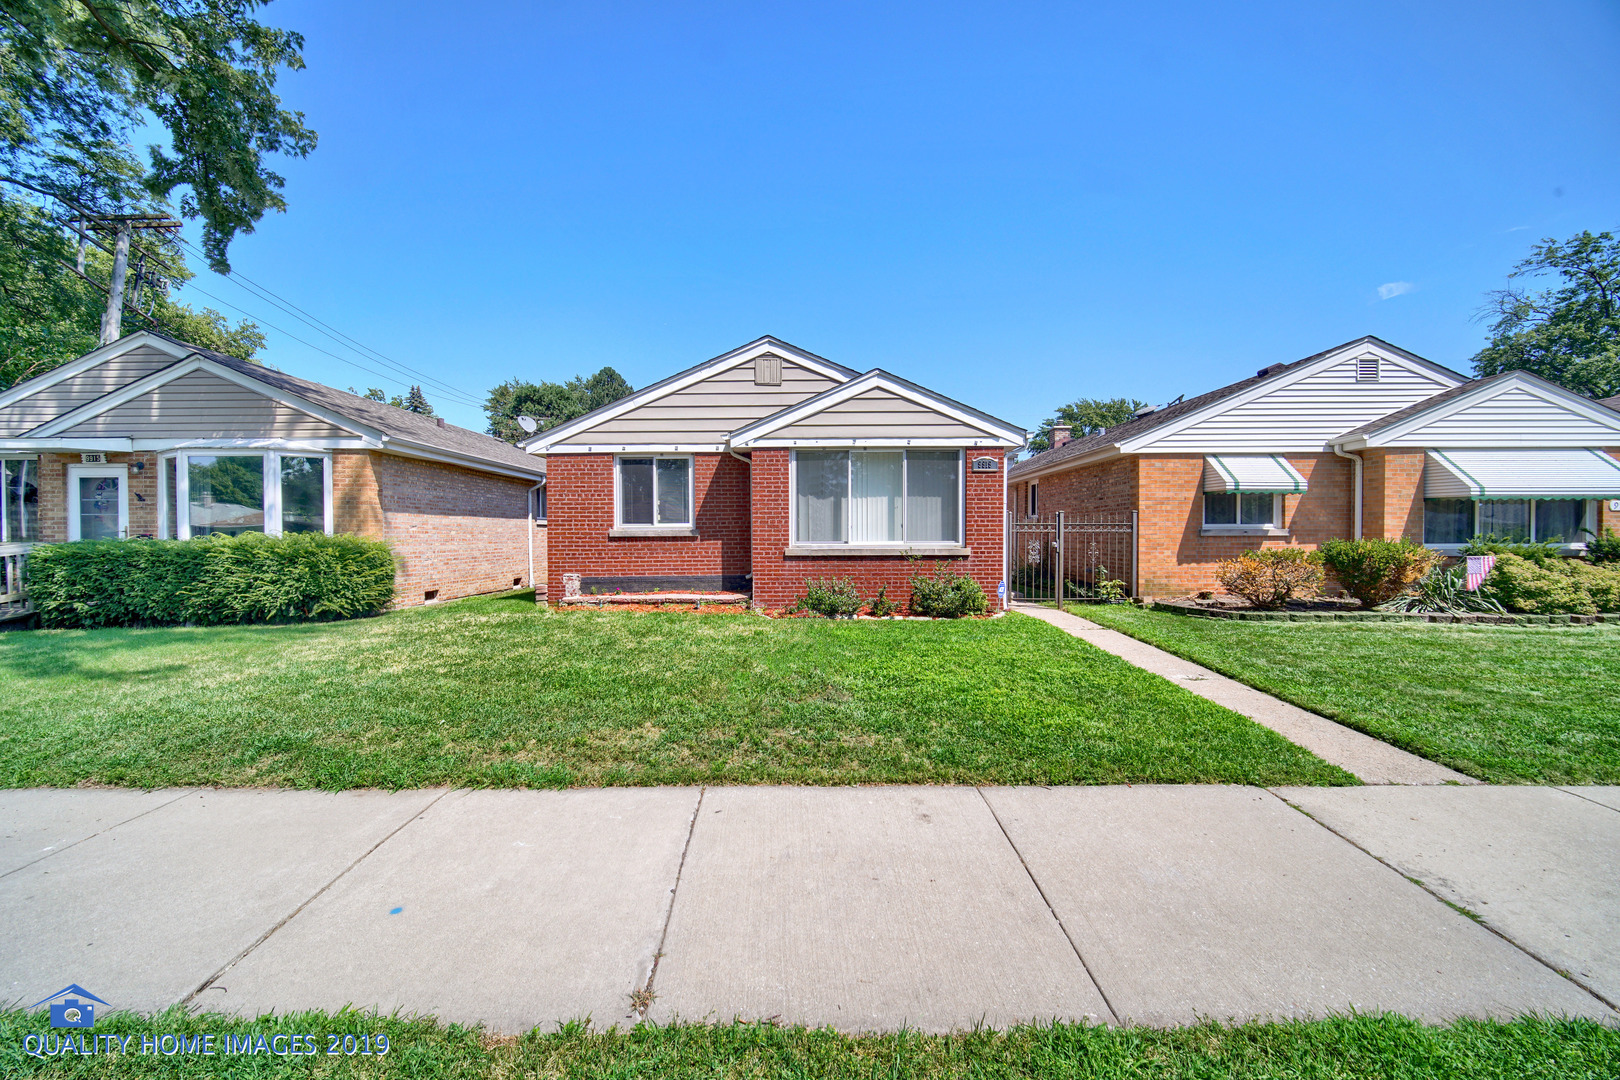 9919 South California Avenue, Beverly-Chicago in Cook County, IL 60655 Home for Sale